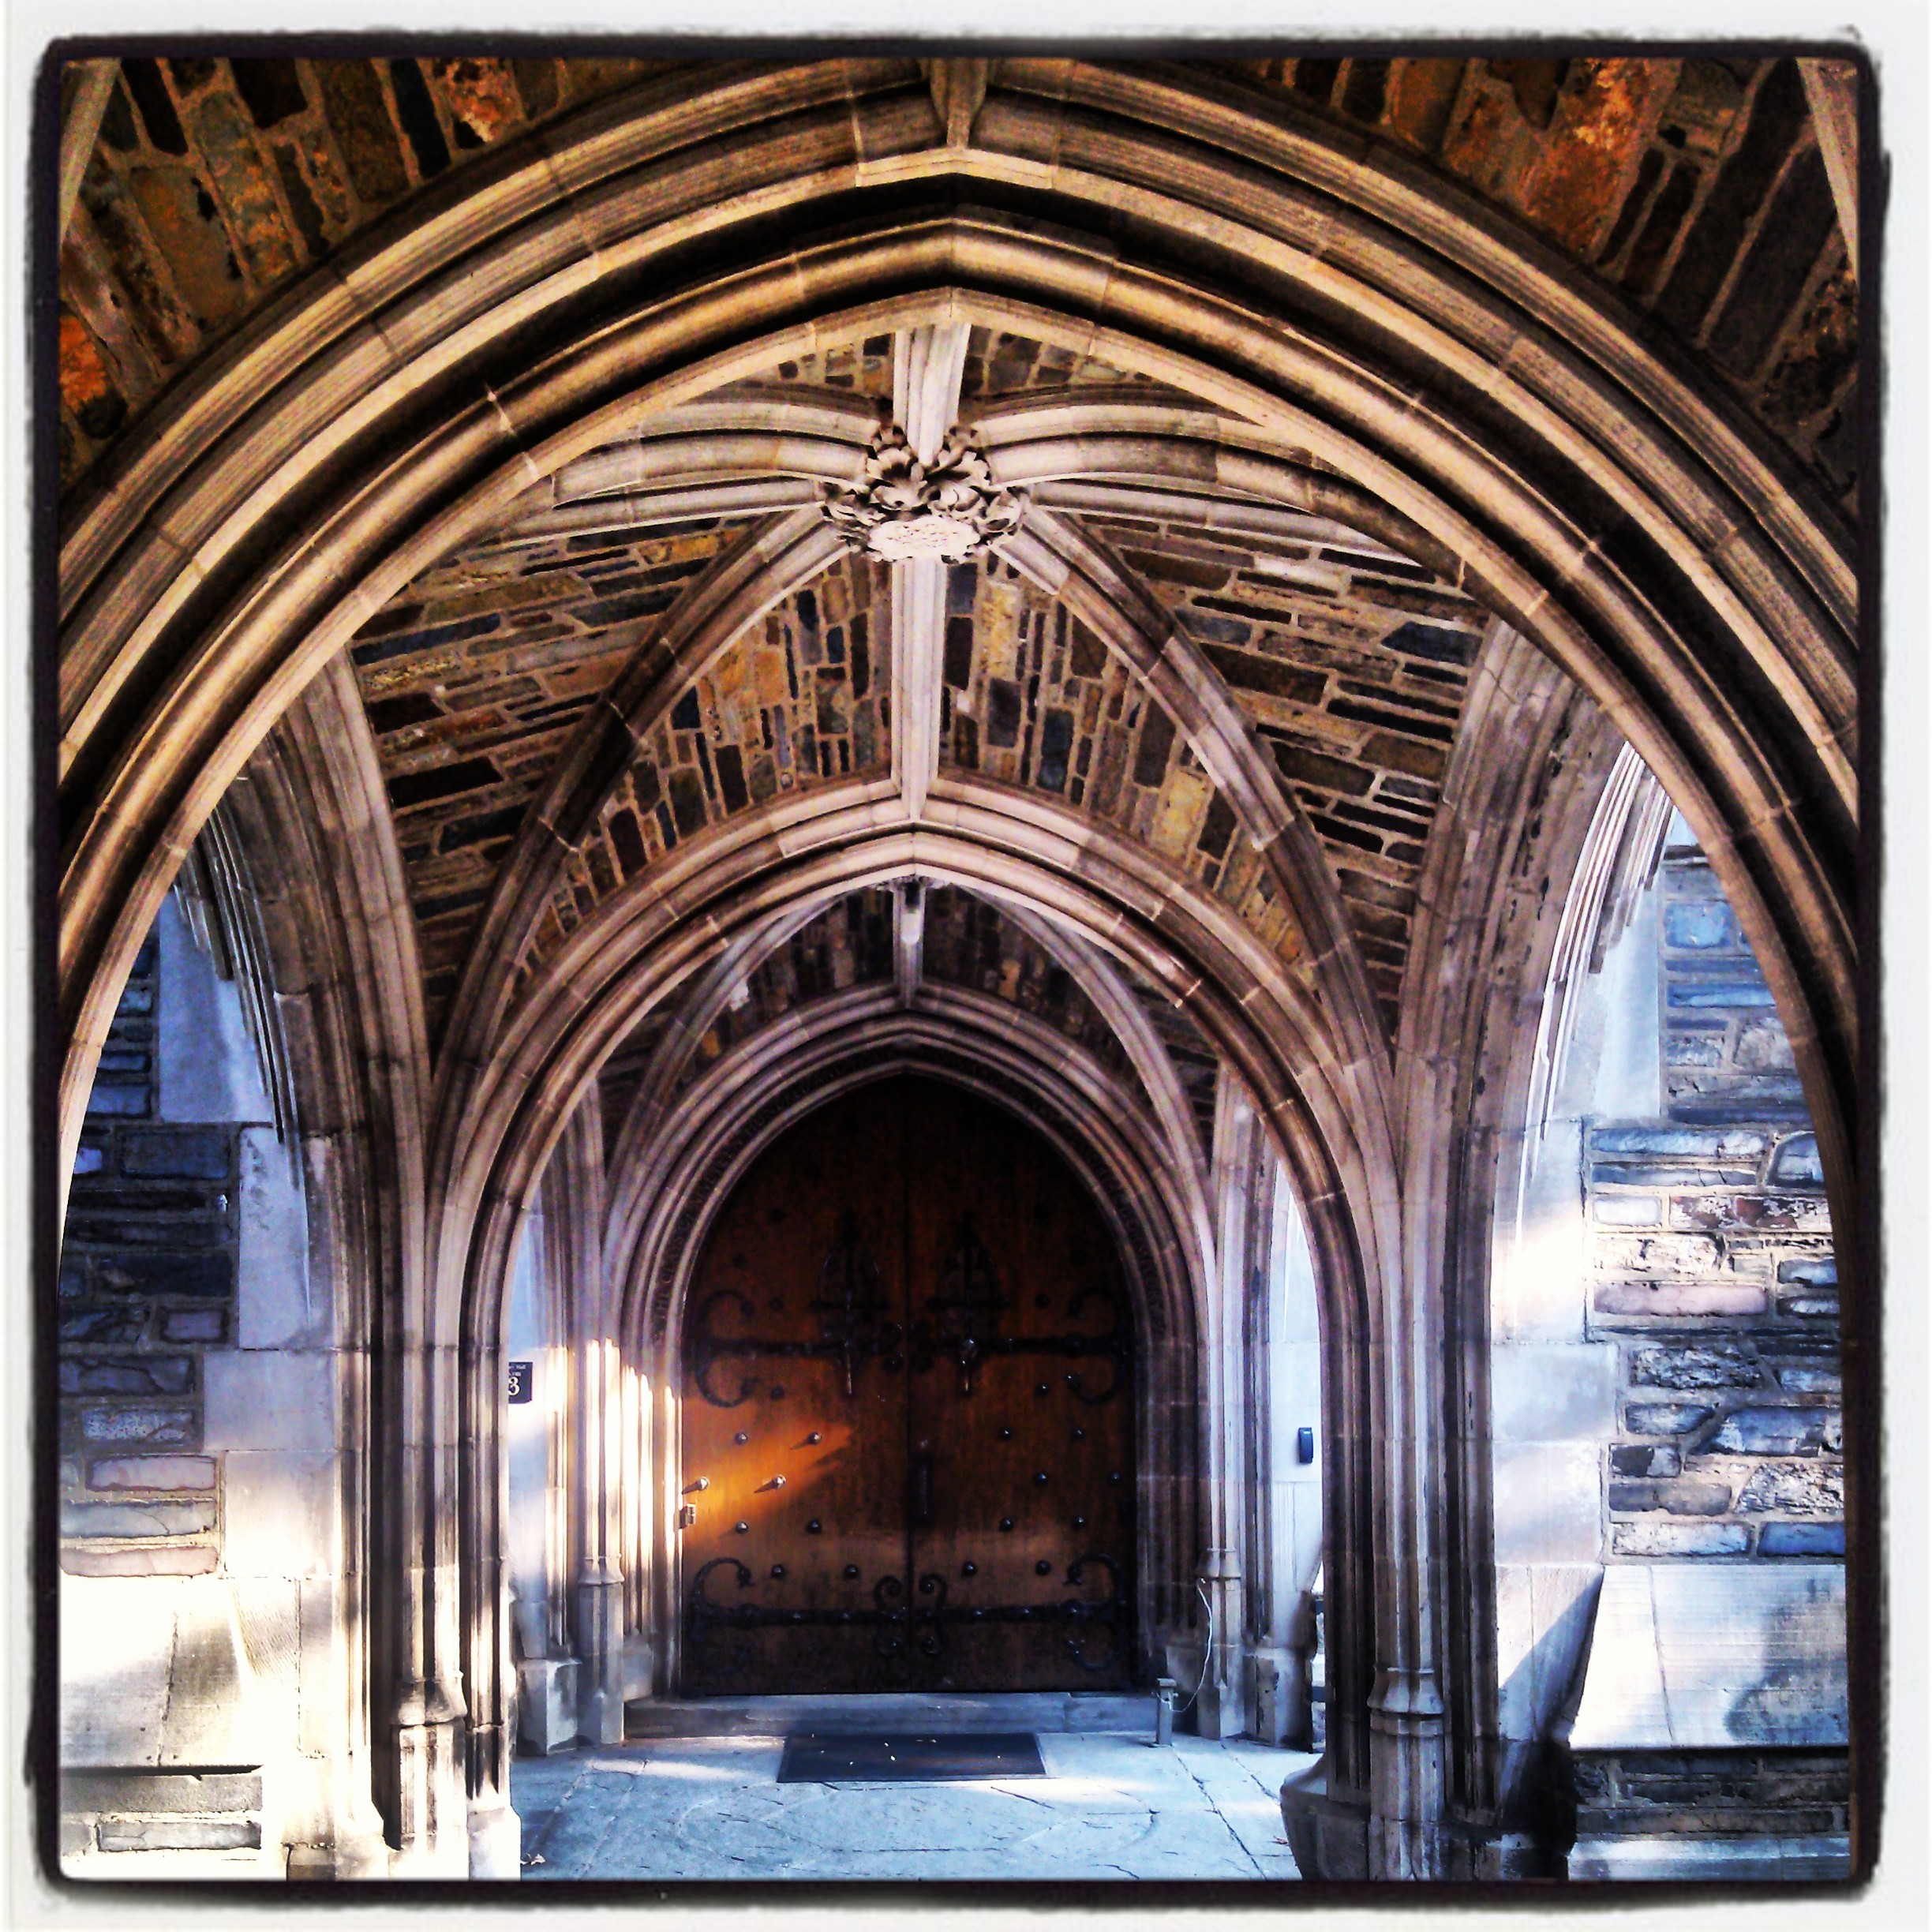 High Arches at Princeton